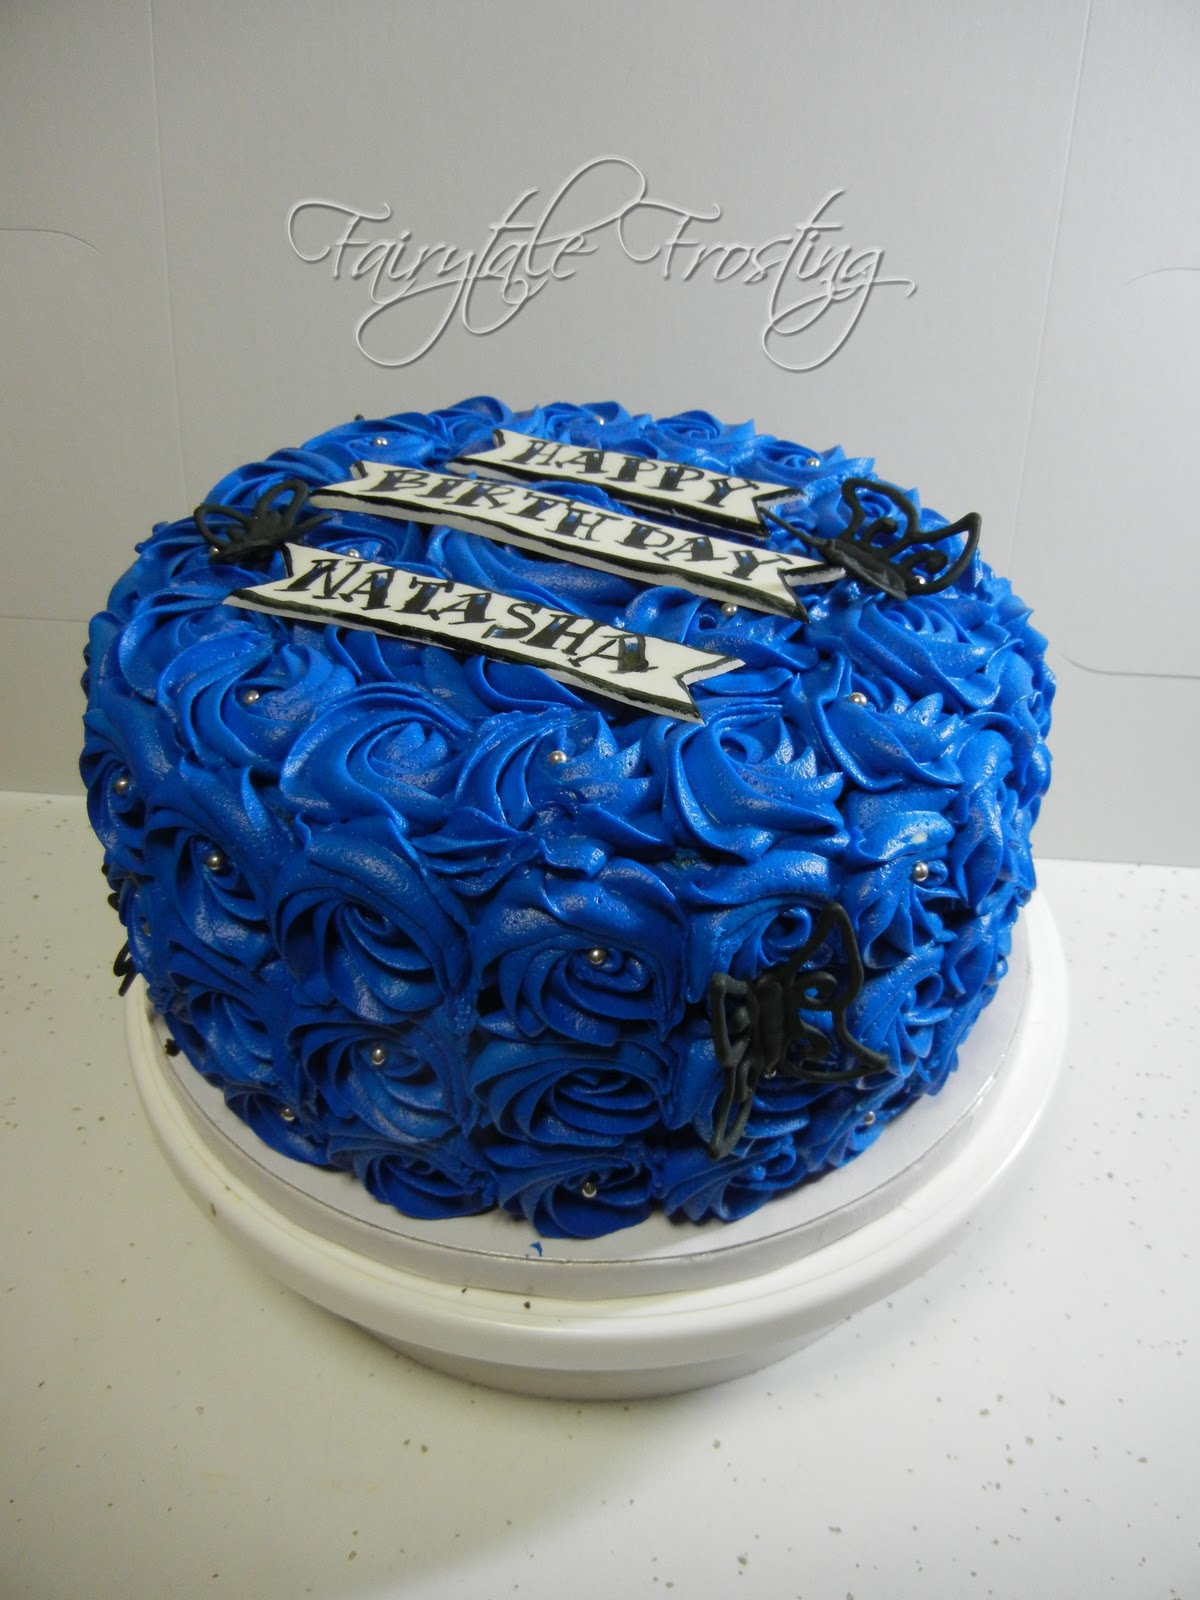 Fairytale Frosting Blue Rose Cake